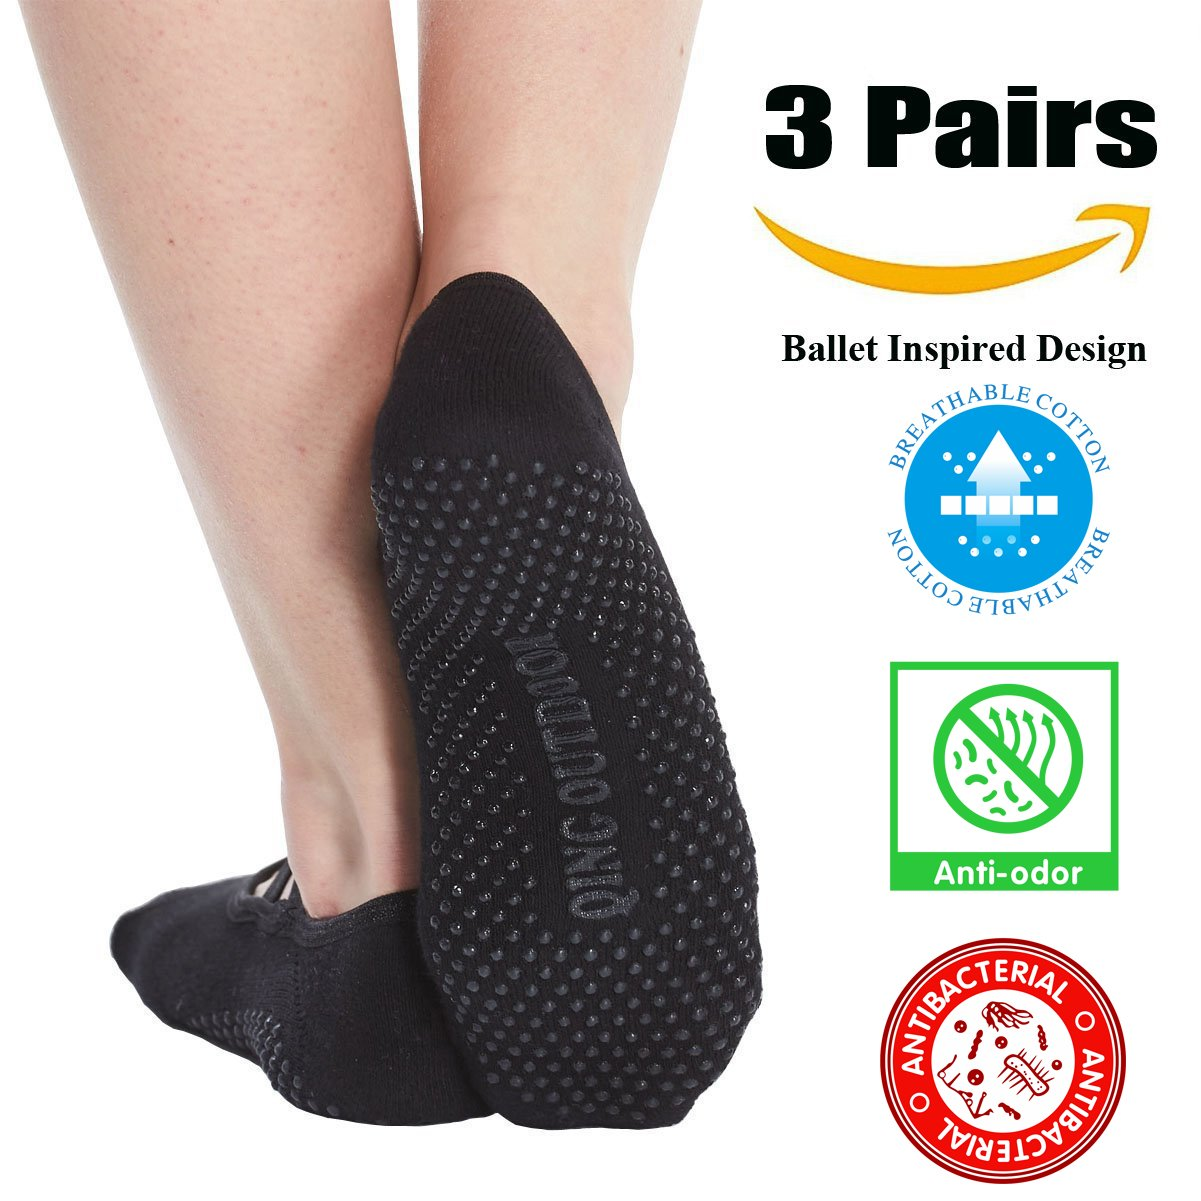 29c4909ae Women s No Show Low Cut Hospital Slipper Socks Great for Barre Pilates Yoga  with Non Skid Grips Pack of 3